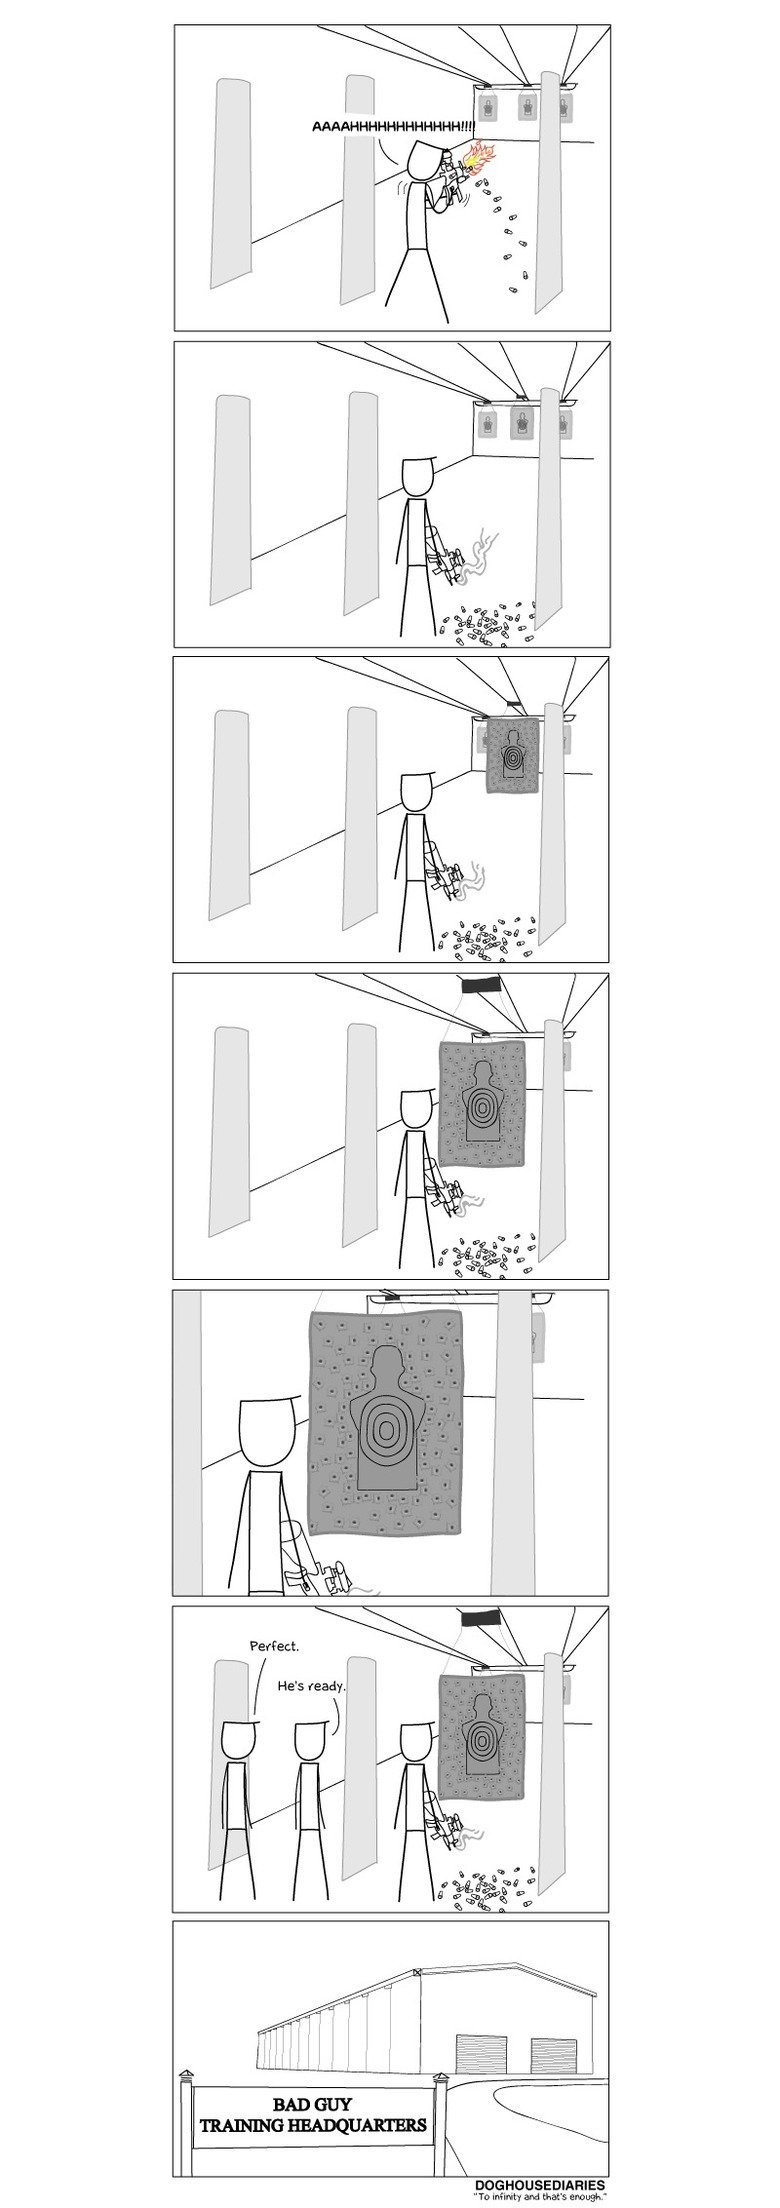 Target Practice. Source: . DOG Tn imam and that': an r. New to this, but tried to include the source: thedoghousediaries.com/3198